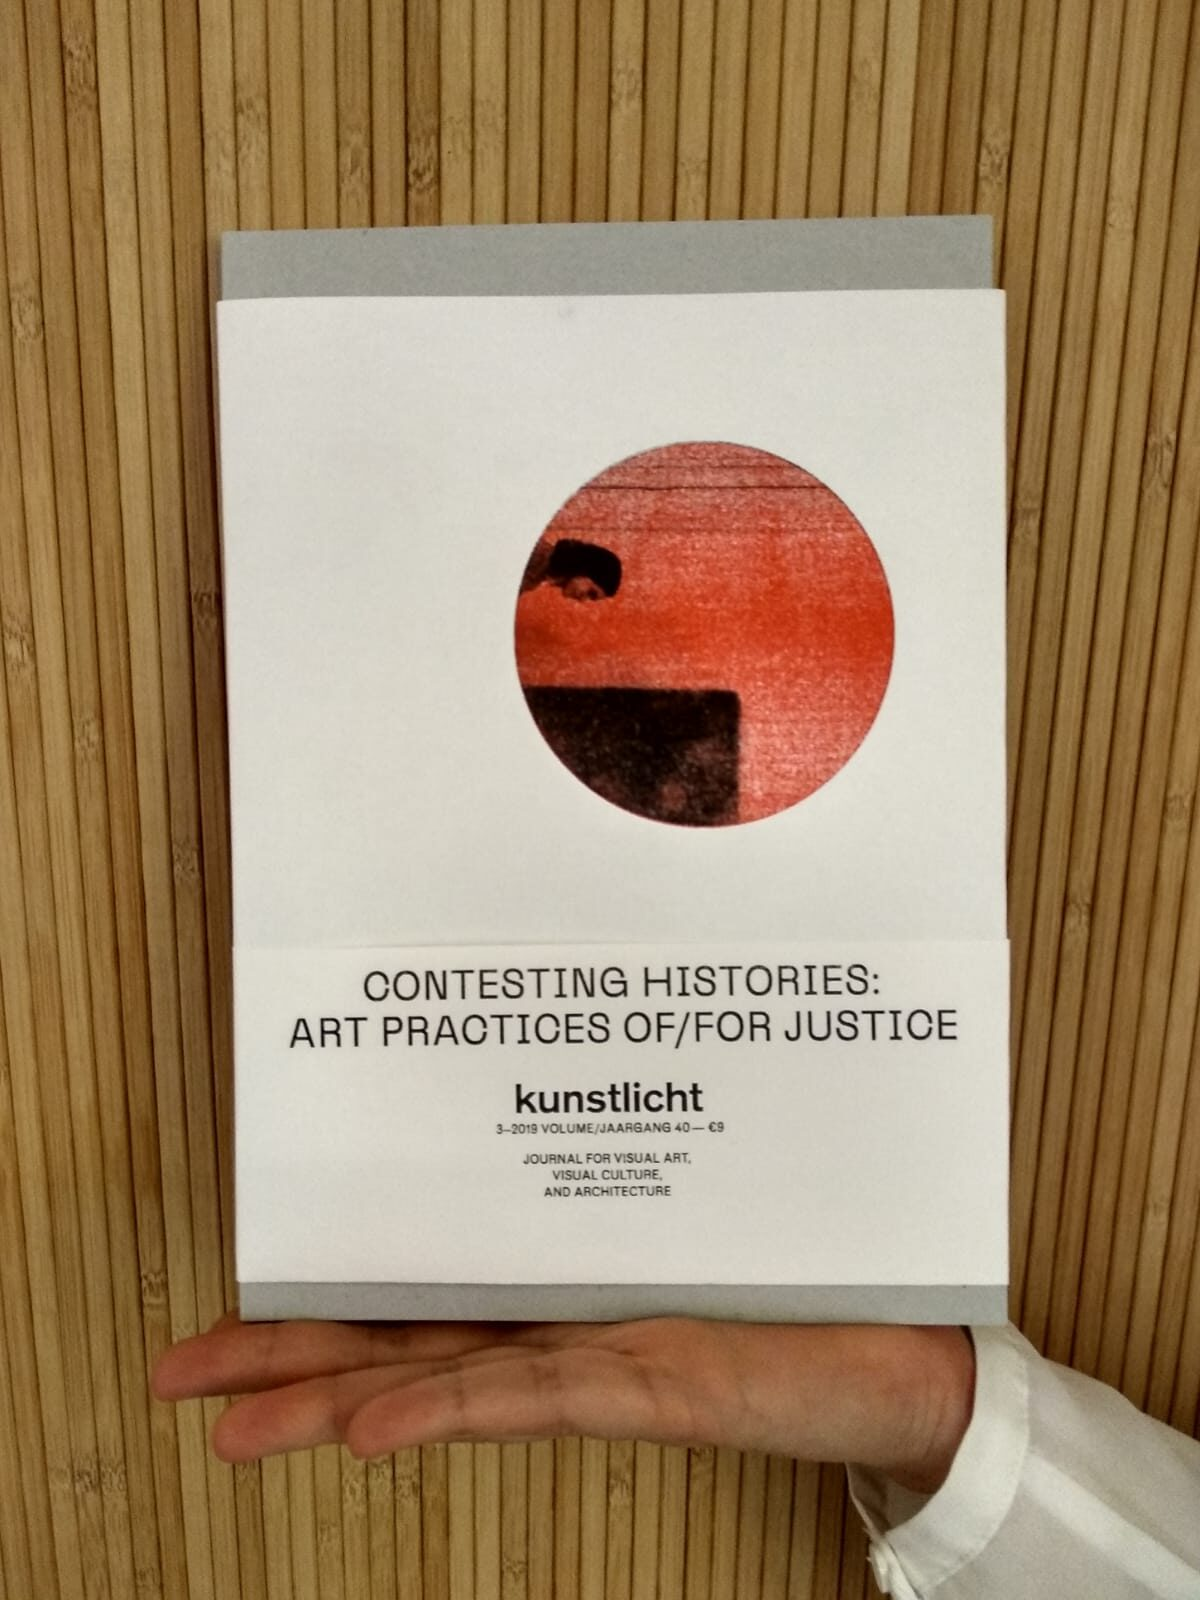 VOL. 40 NO. 3, 2019, CONTESTING HISTORIES: ART PRACTICES OF/FOR JUSTICE